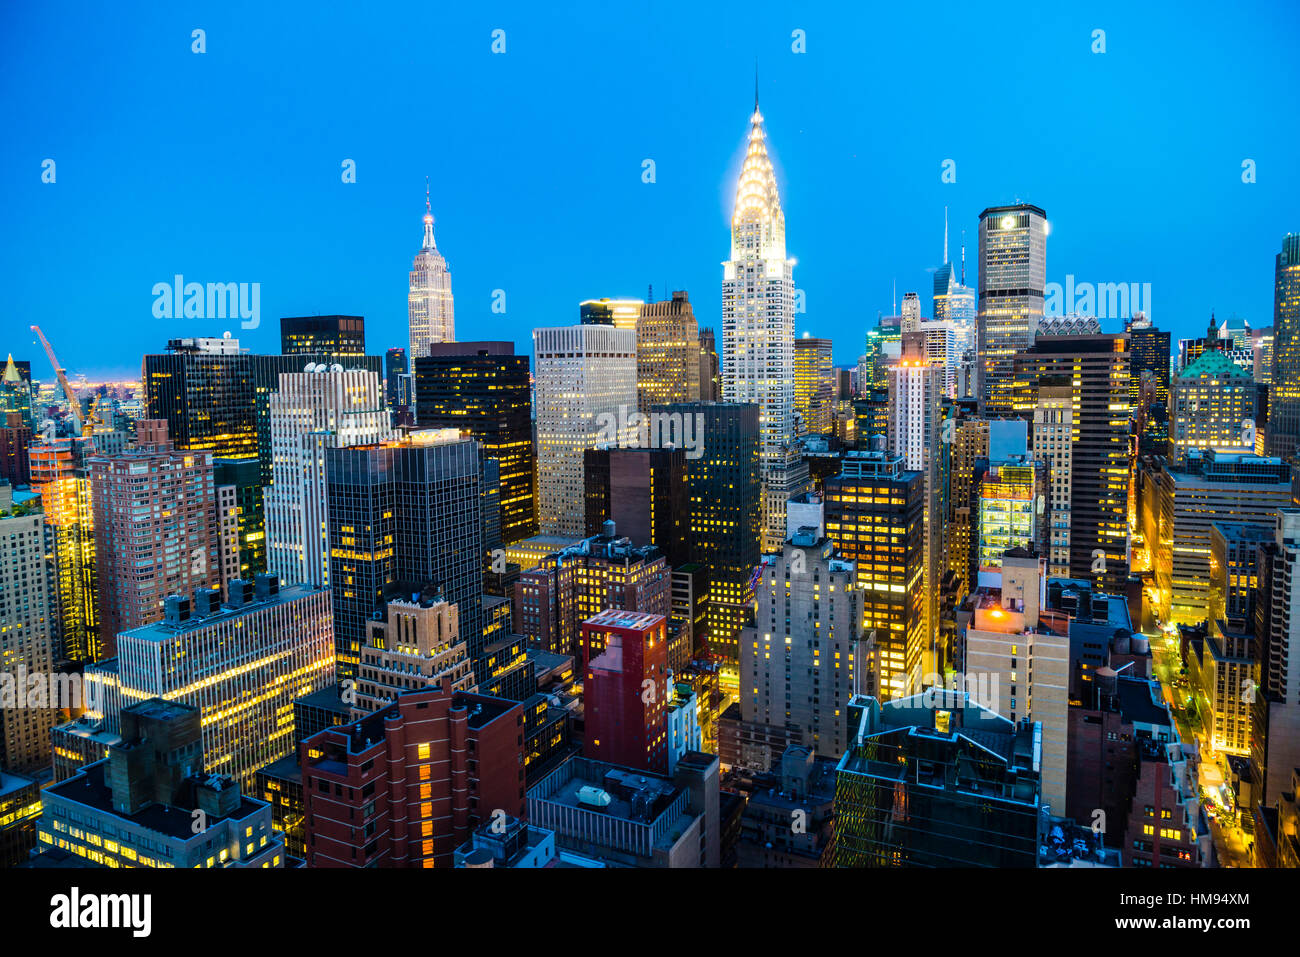 Manhattan skyline, Empire State Building and Chrysler Building, New York City, United States of America, North America - Stock Image